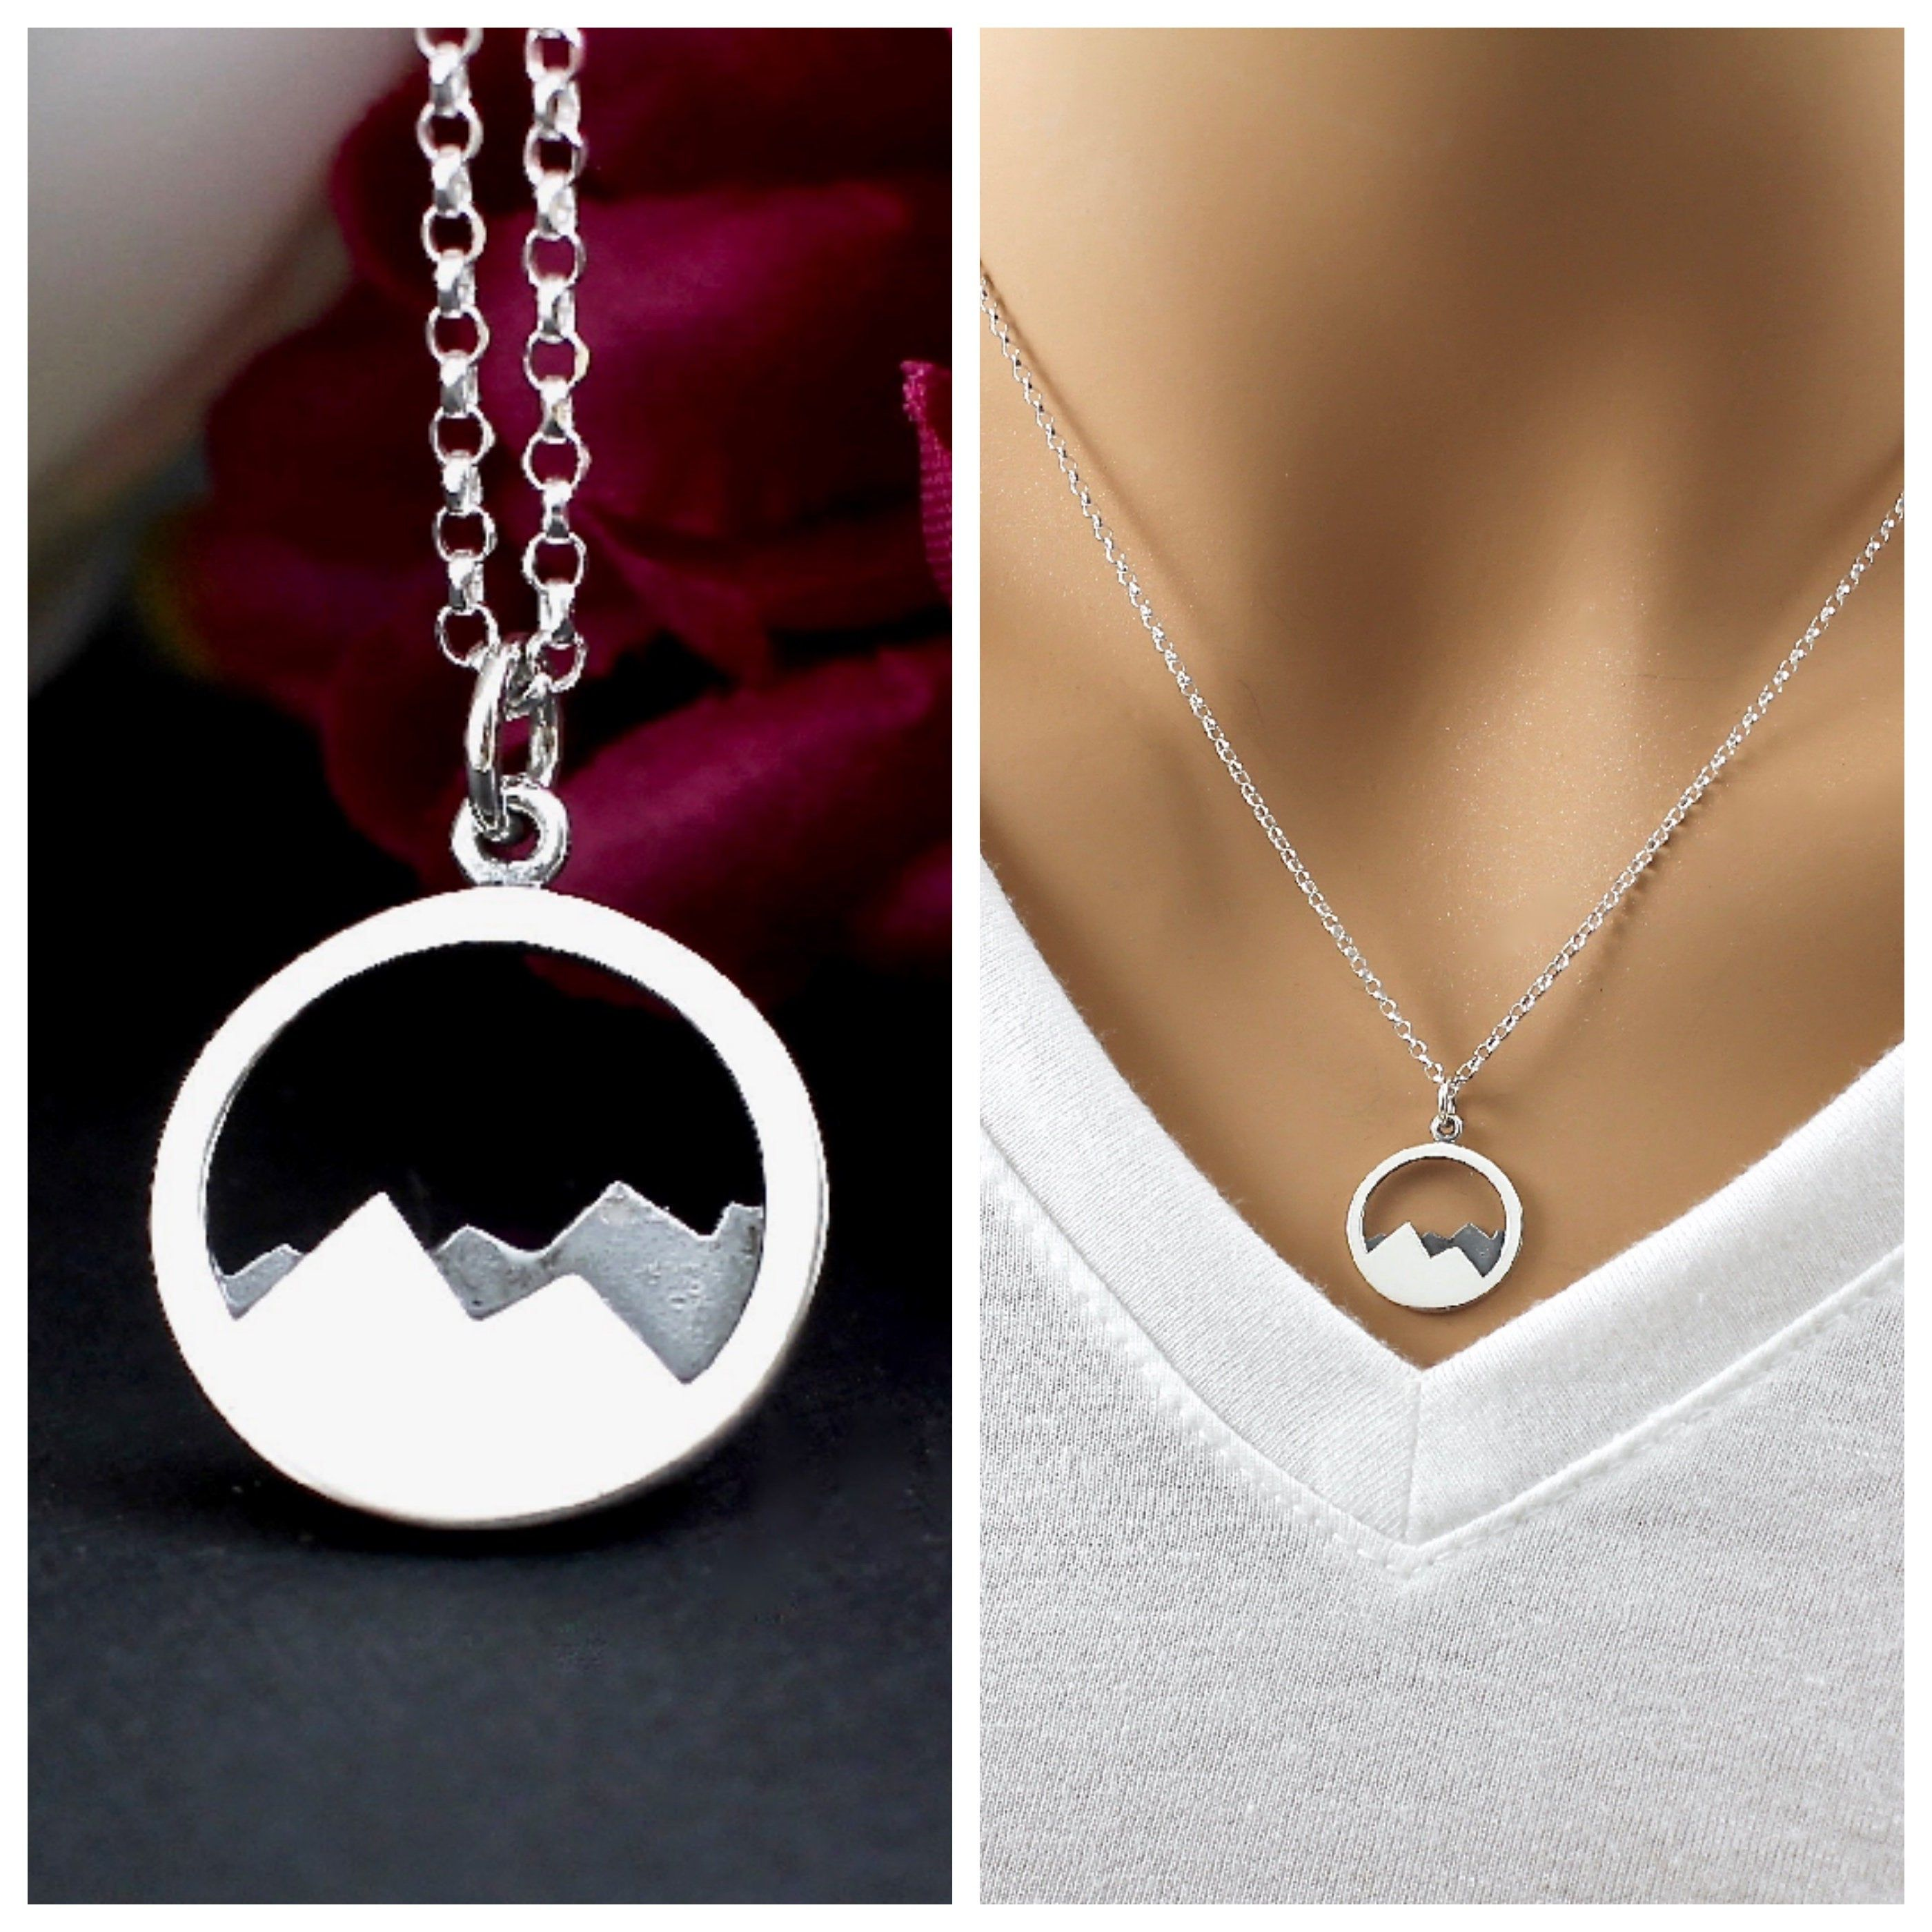 c3276695ff806 Mountain Necklace Sterling Silver - Mountain Range Necklace - The ...